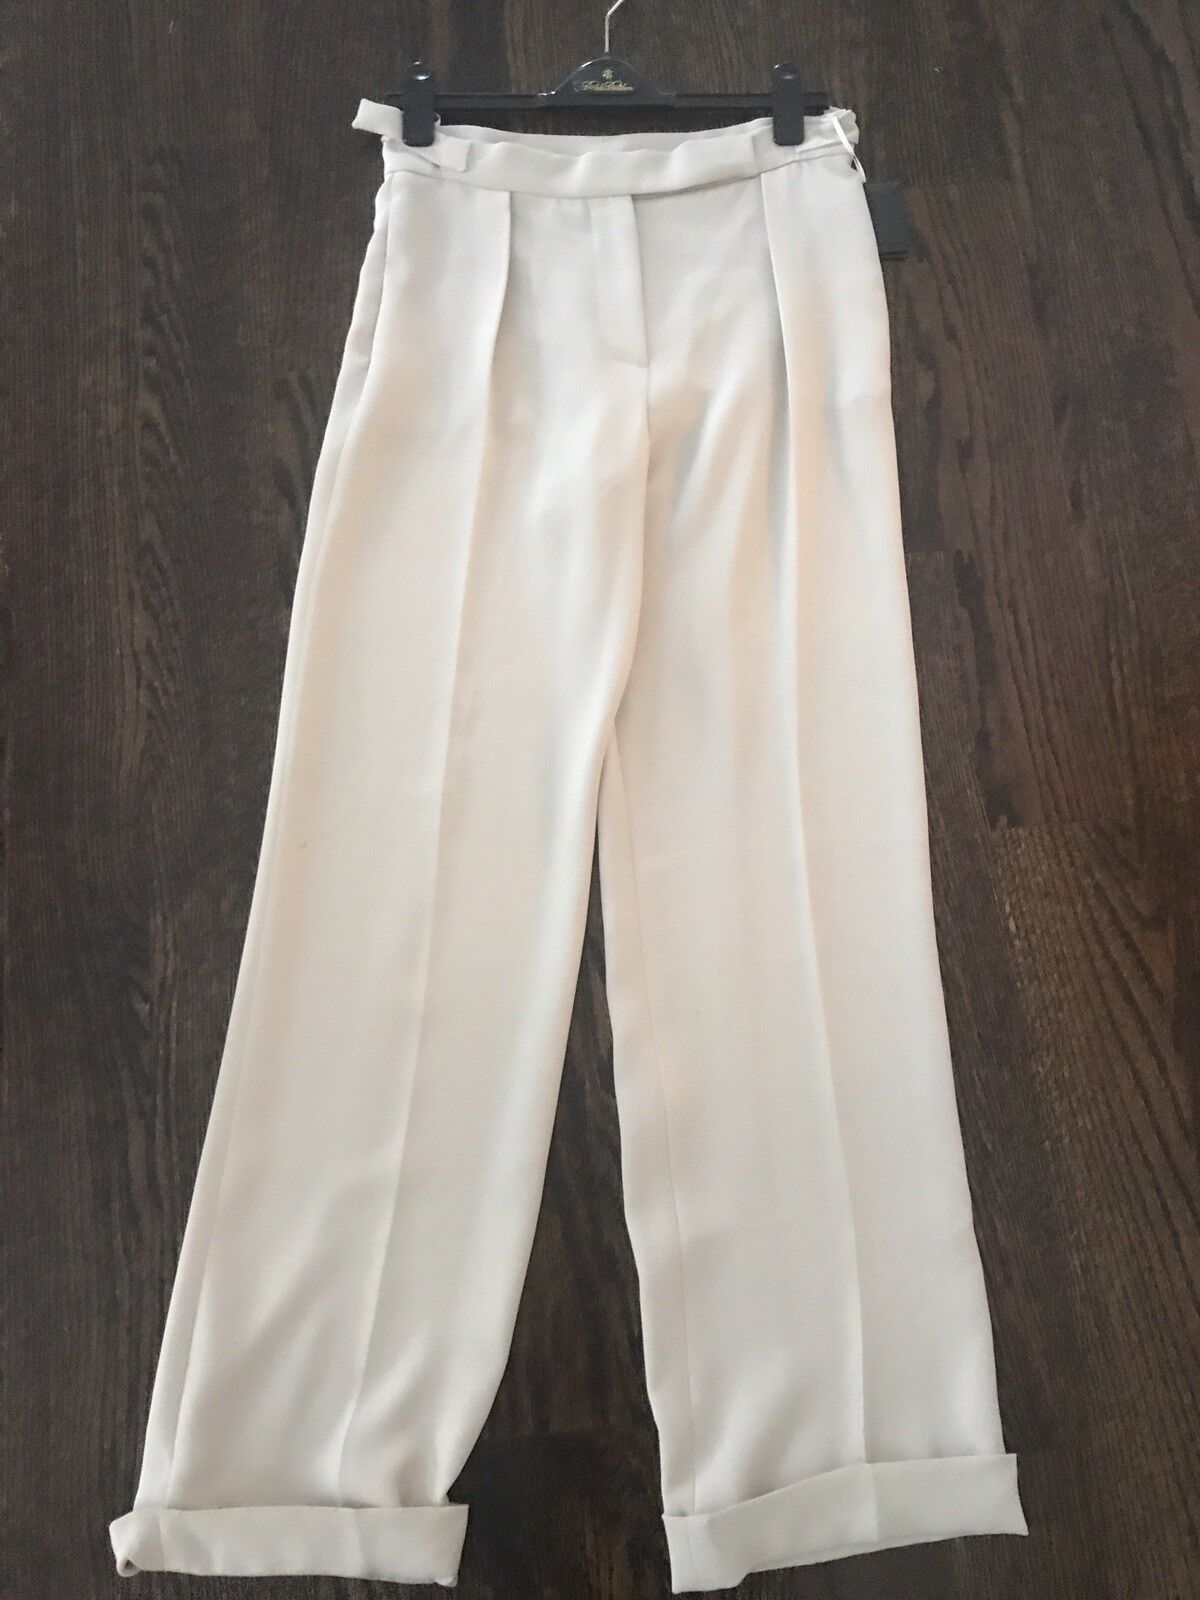 Lanvin Silk Ivory Pants Trousers Size 36 Lined  1200